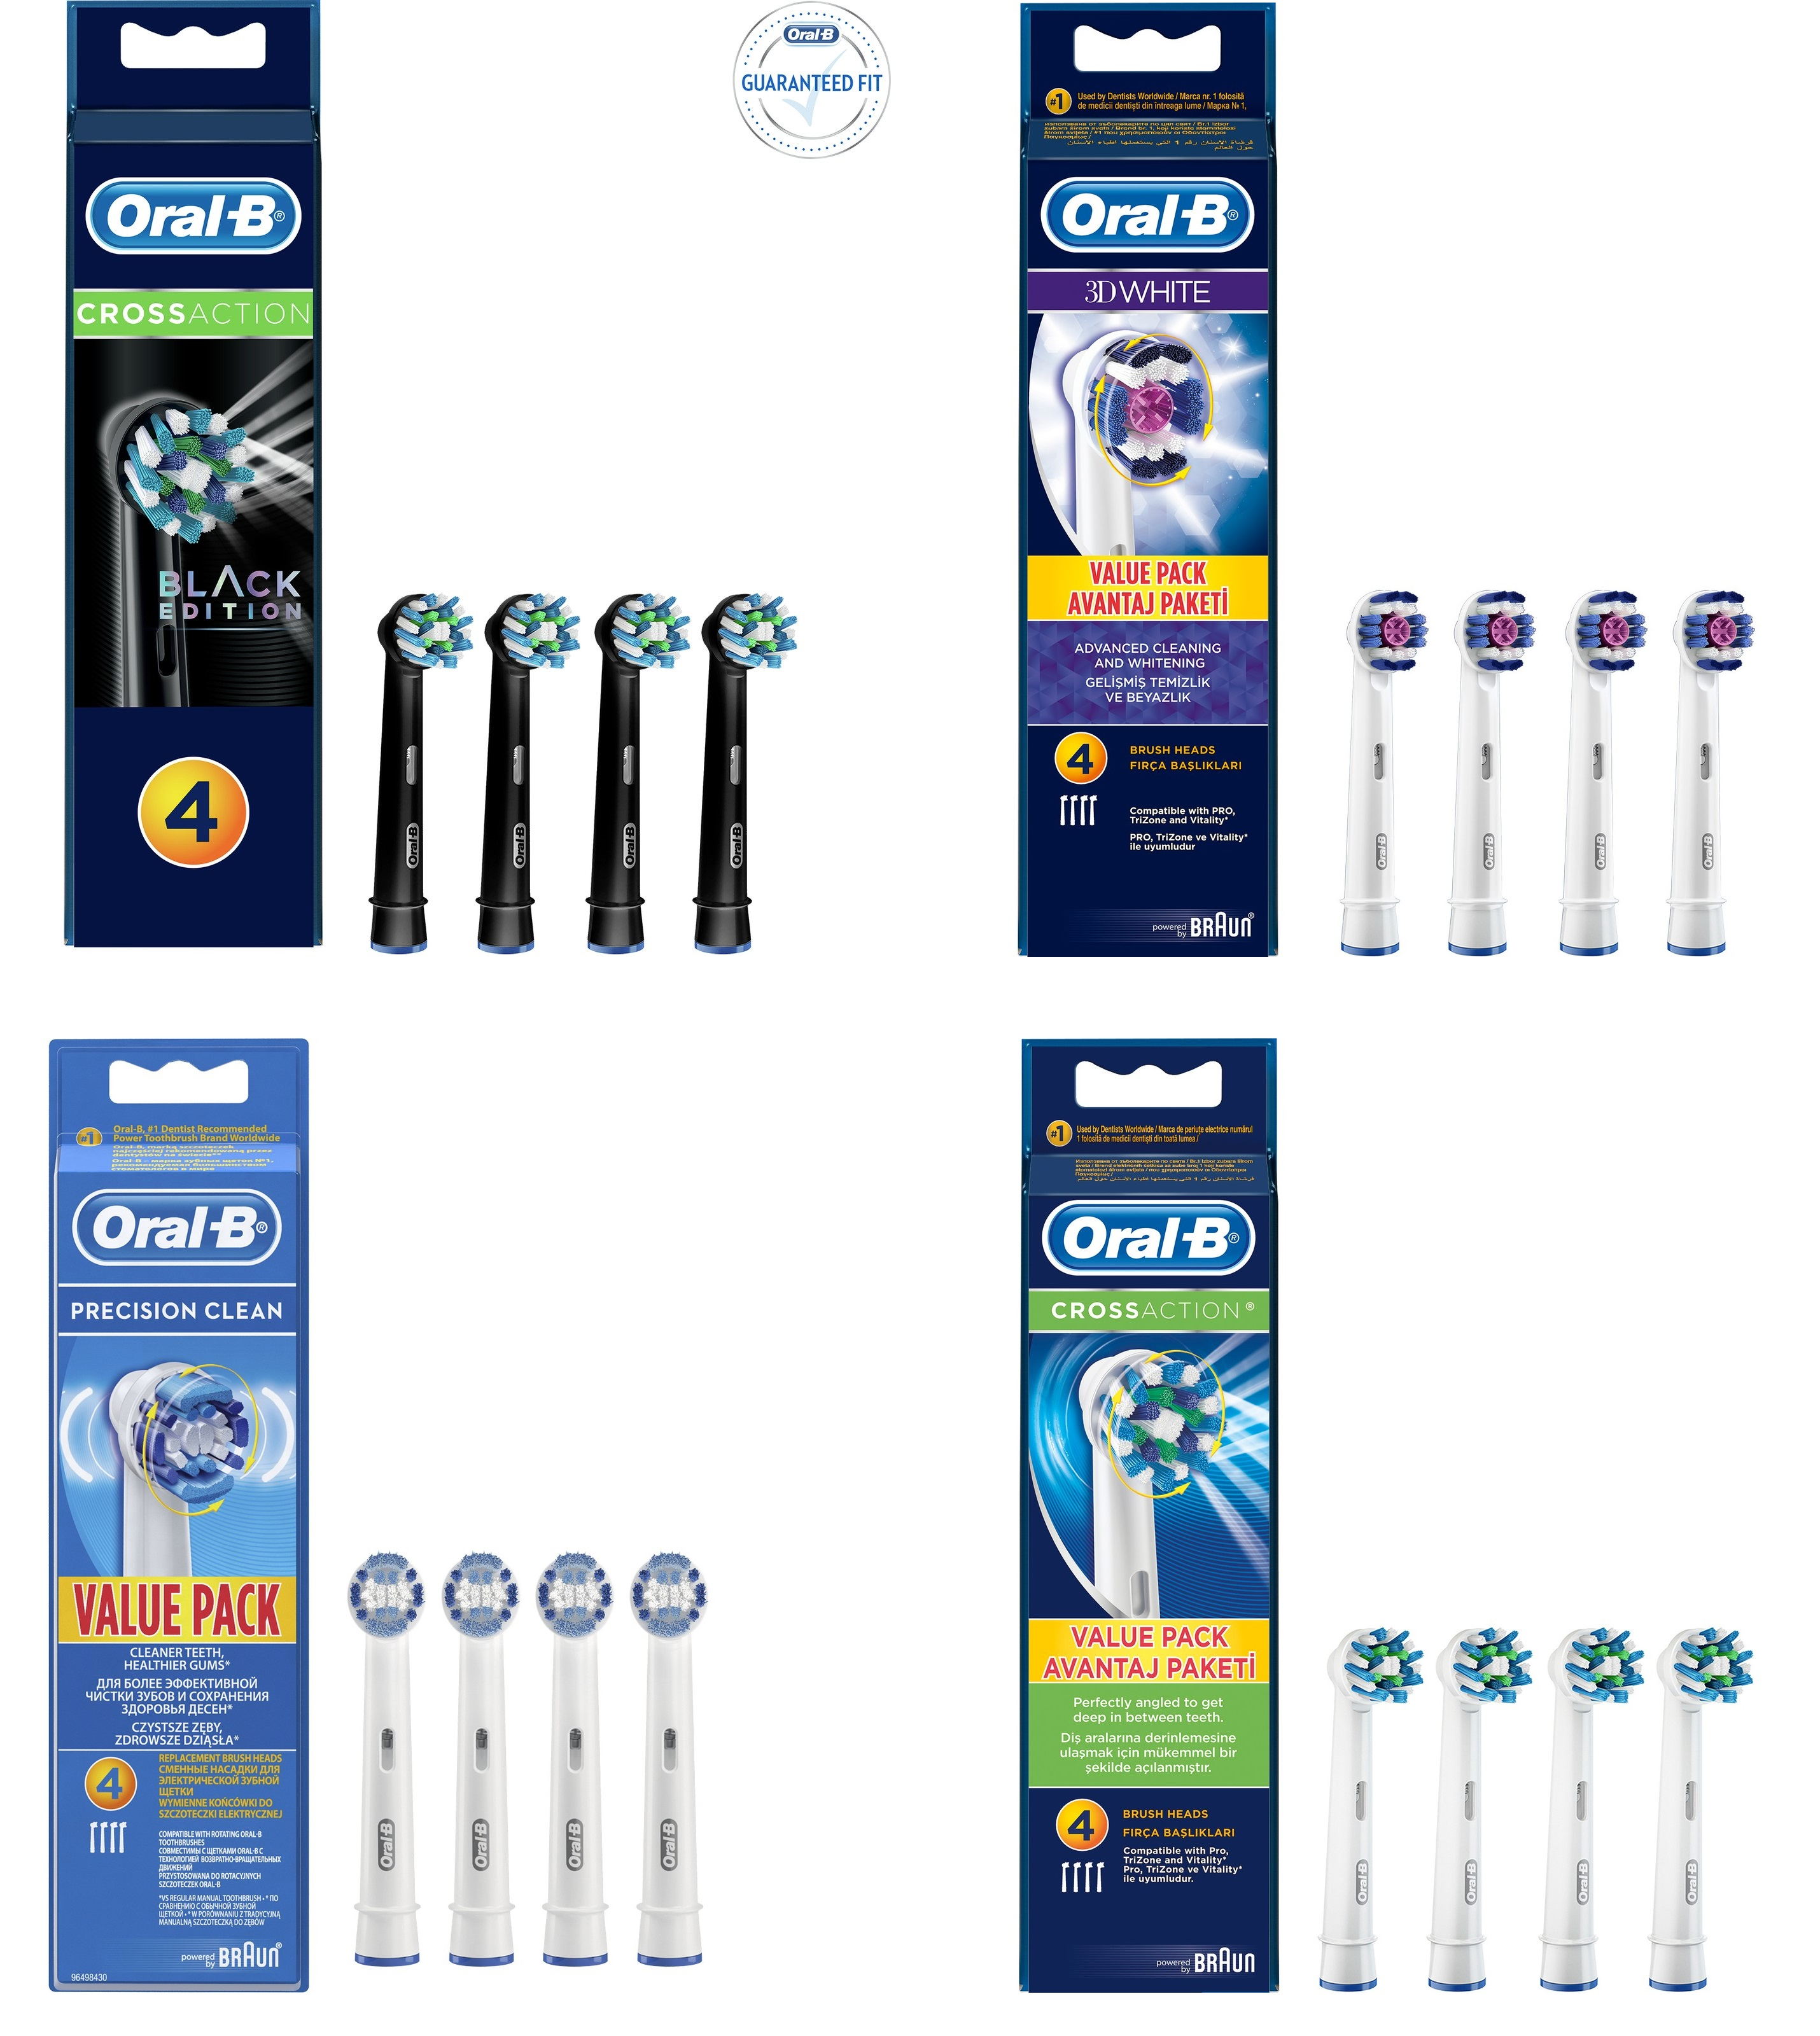 Oral-B Electric Replacement Toothbrush Heads Cross Action Black,3D White, Precision Clean,Cross Action image